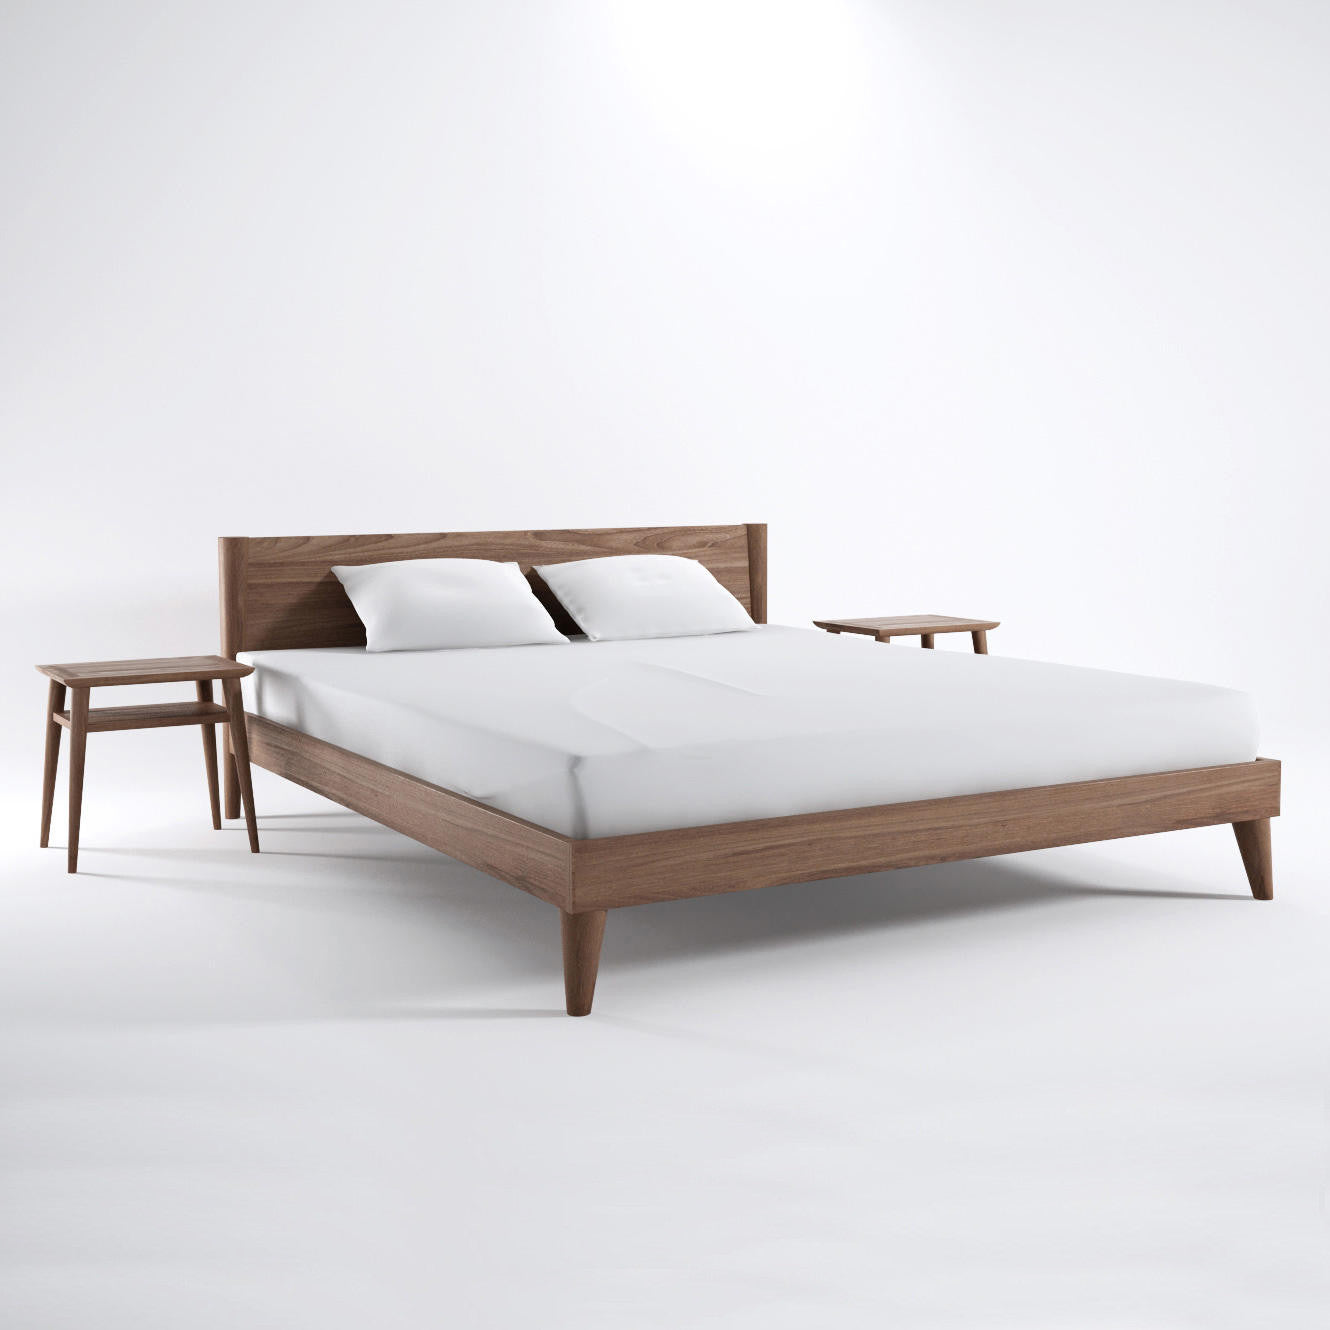 mattress king commercial. Karpenter Vintage Bed Reclaimed Teak Mattress King Commercial U